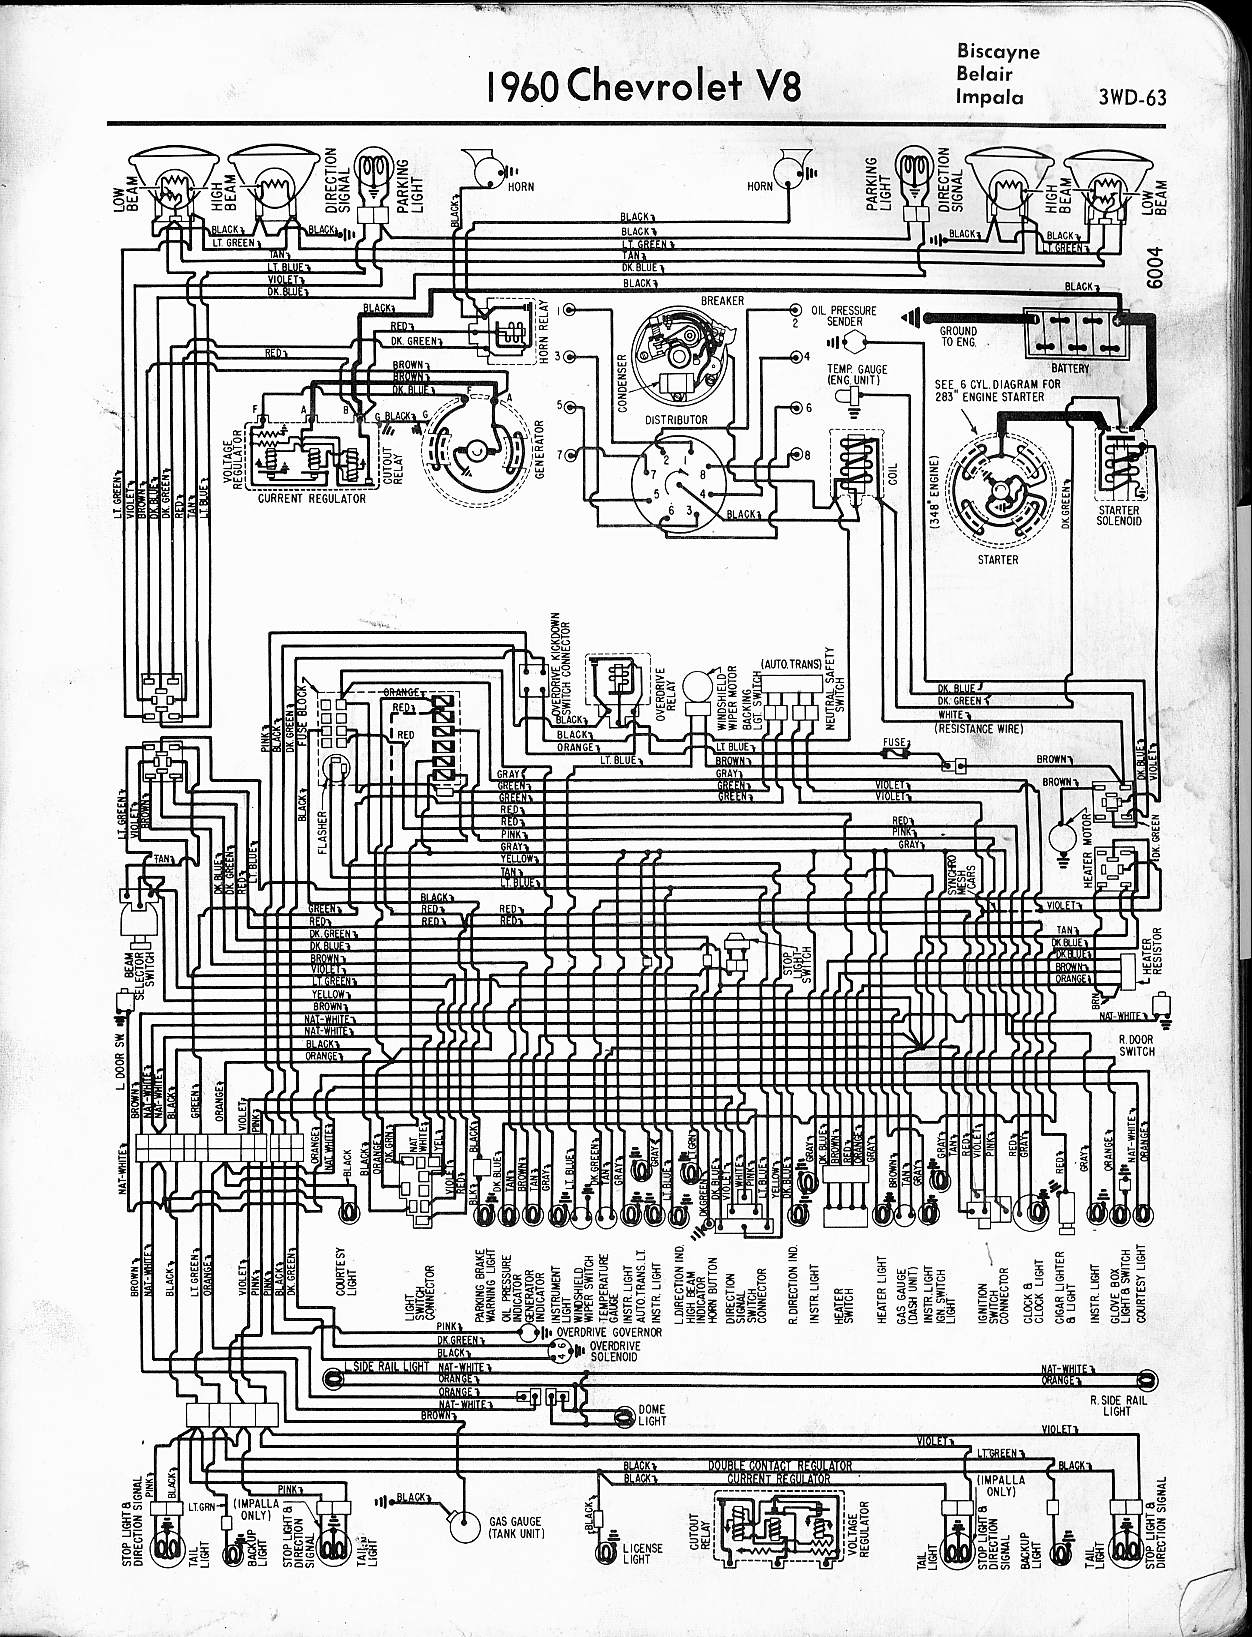 60 Apache Wiring Diagram Change Your Idea With Design V8 Ford Engine 57 65 Chevy Diagrams Rh Oldcarmanualproject Com Art